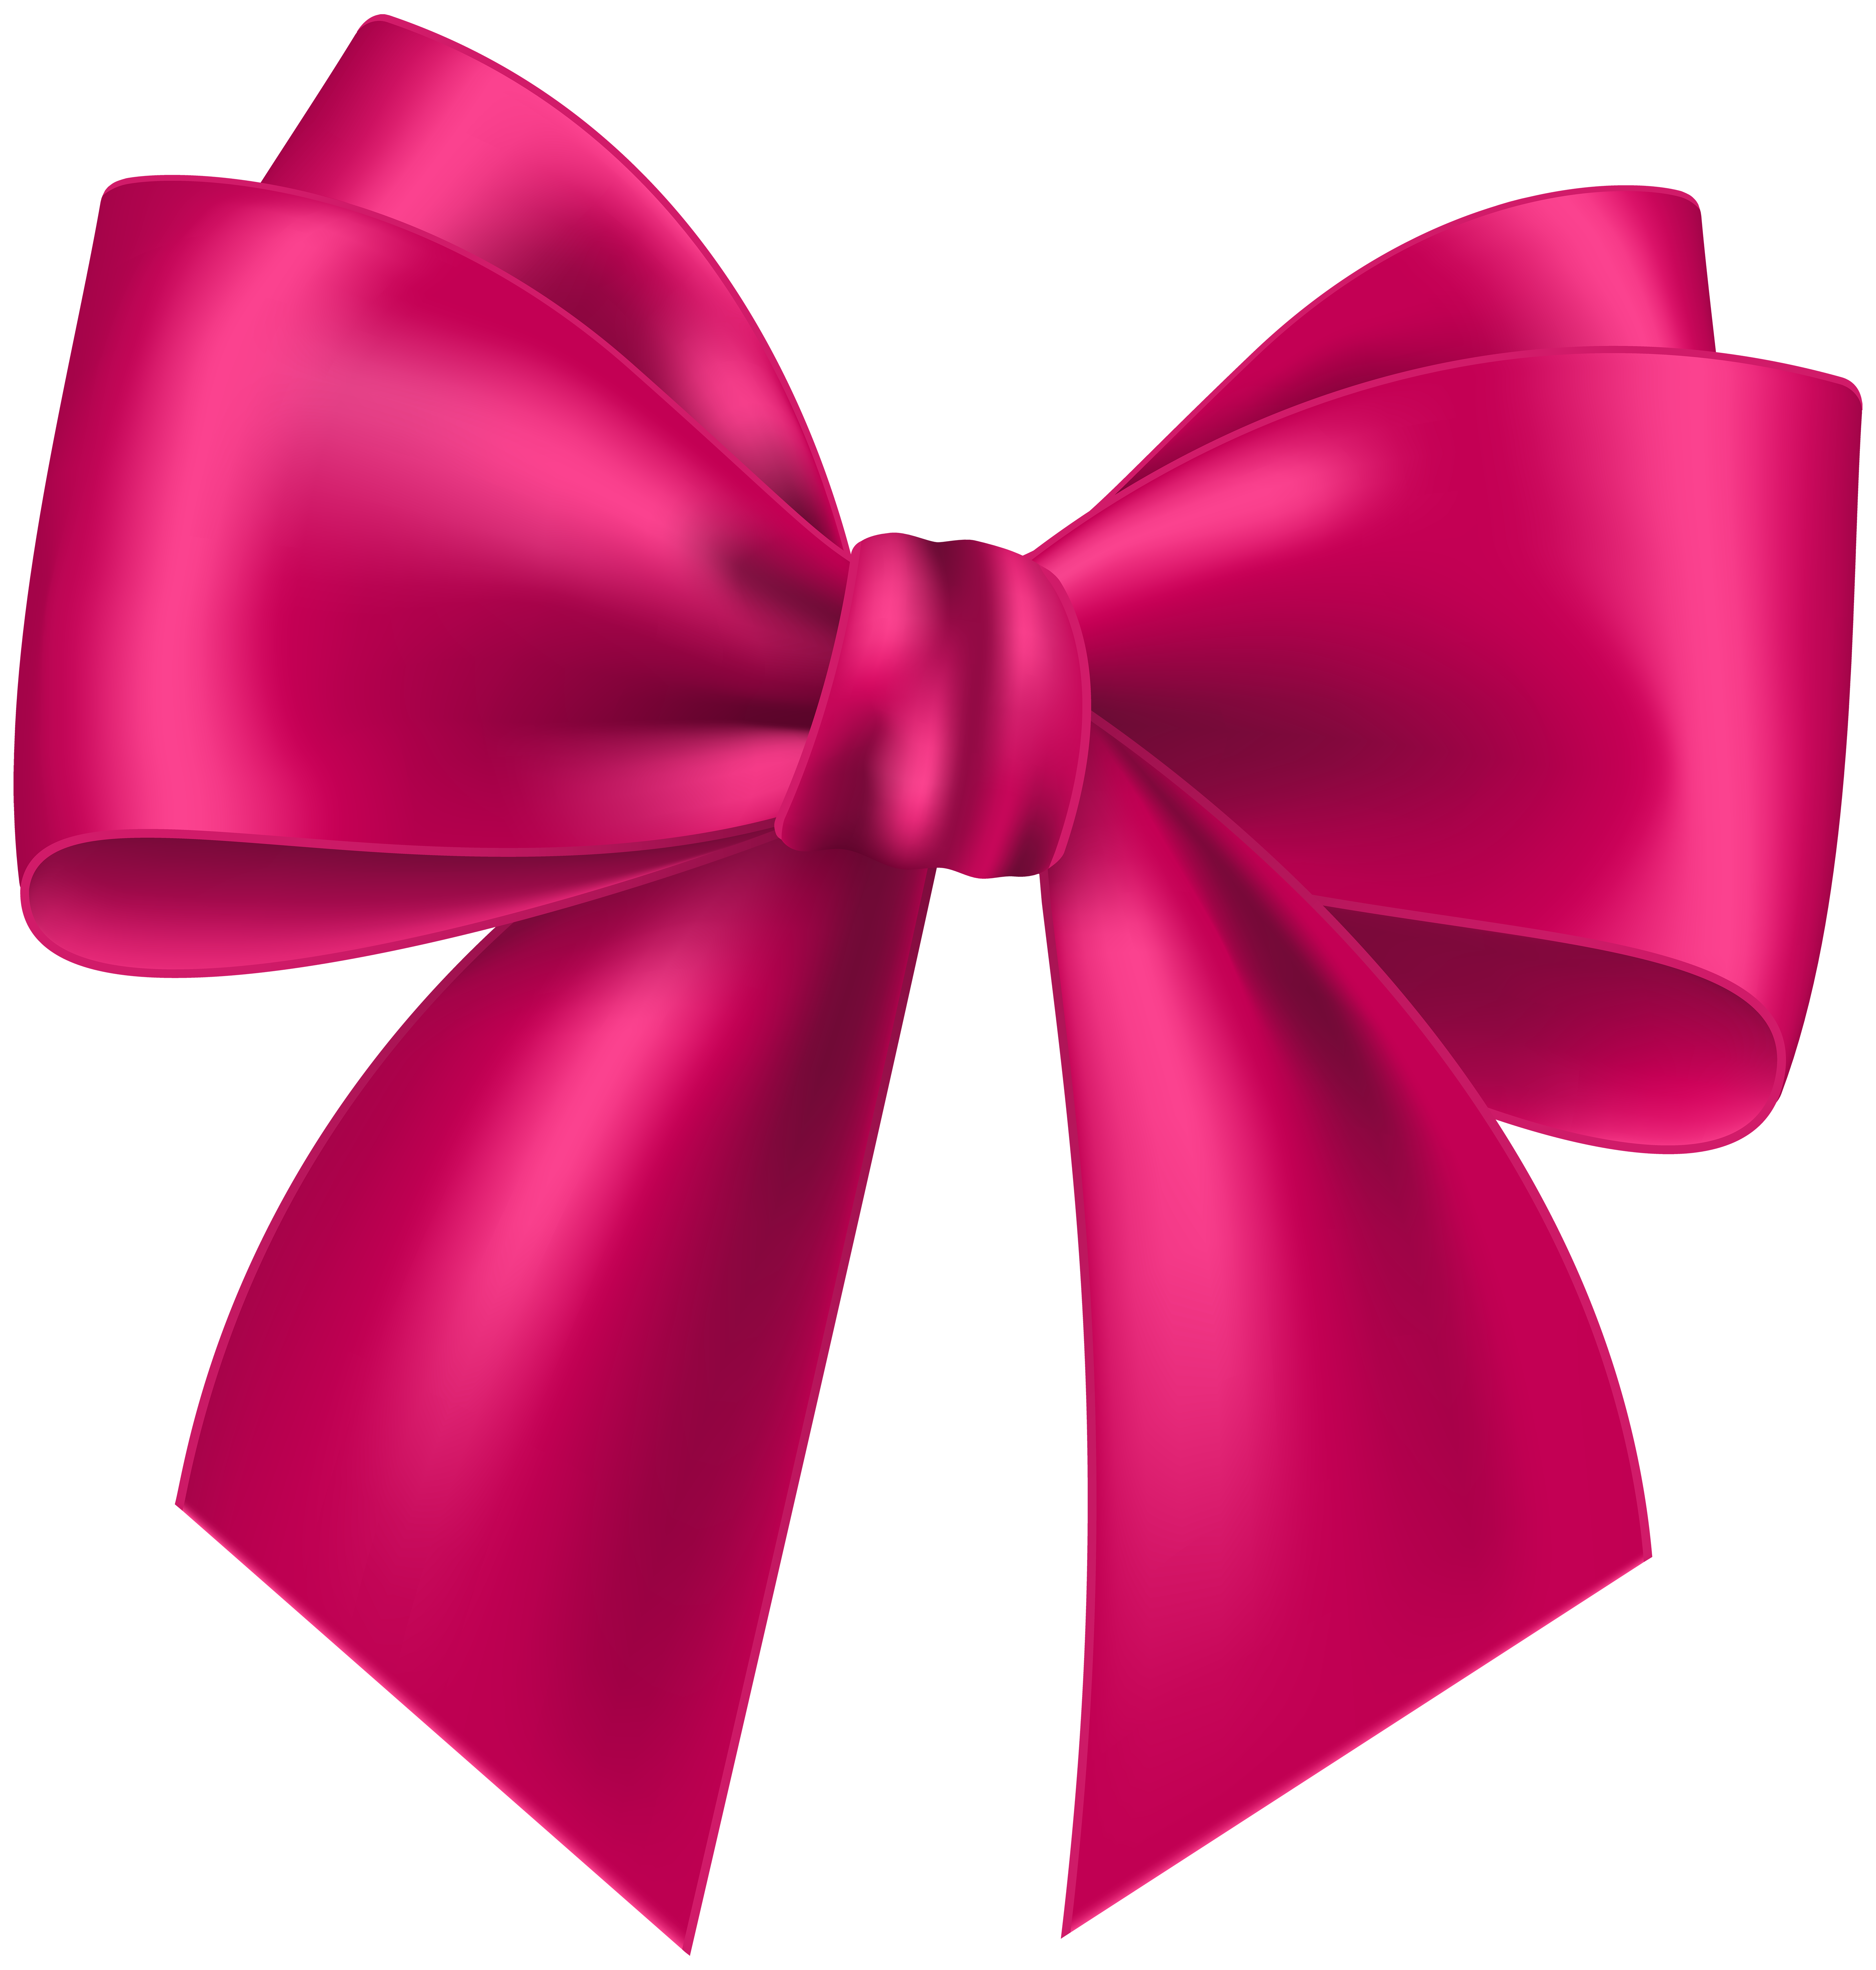 Transparent clip art image. Pink bow png vector royalty free stock